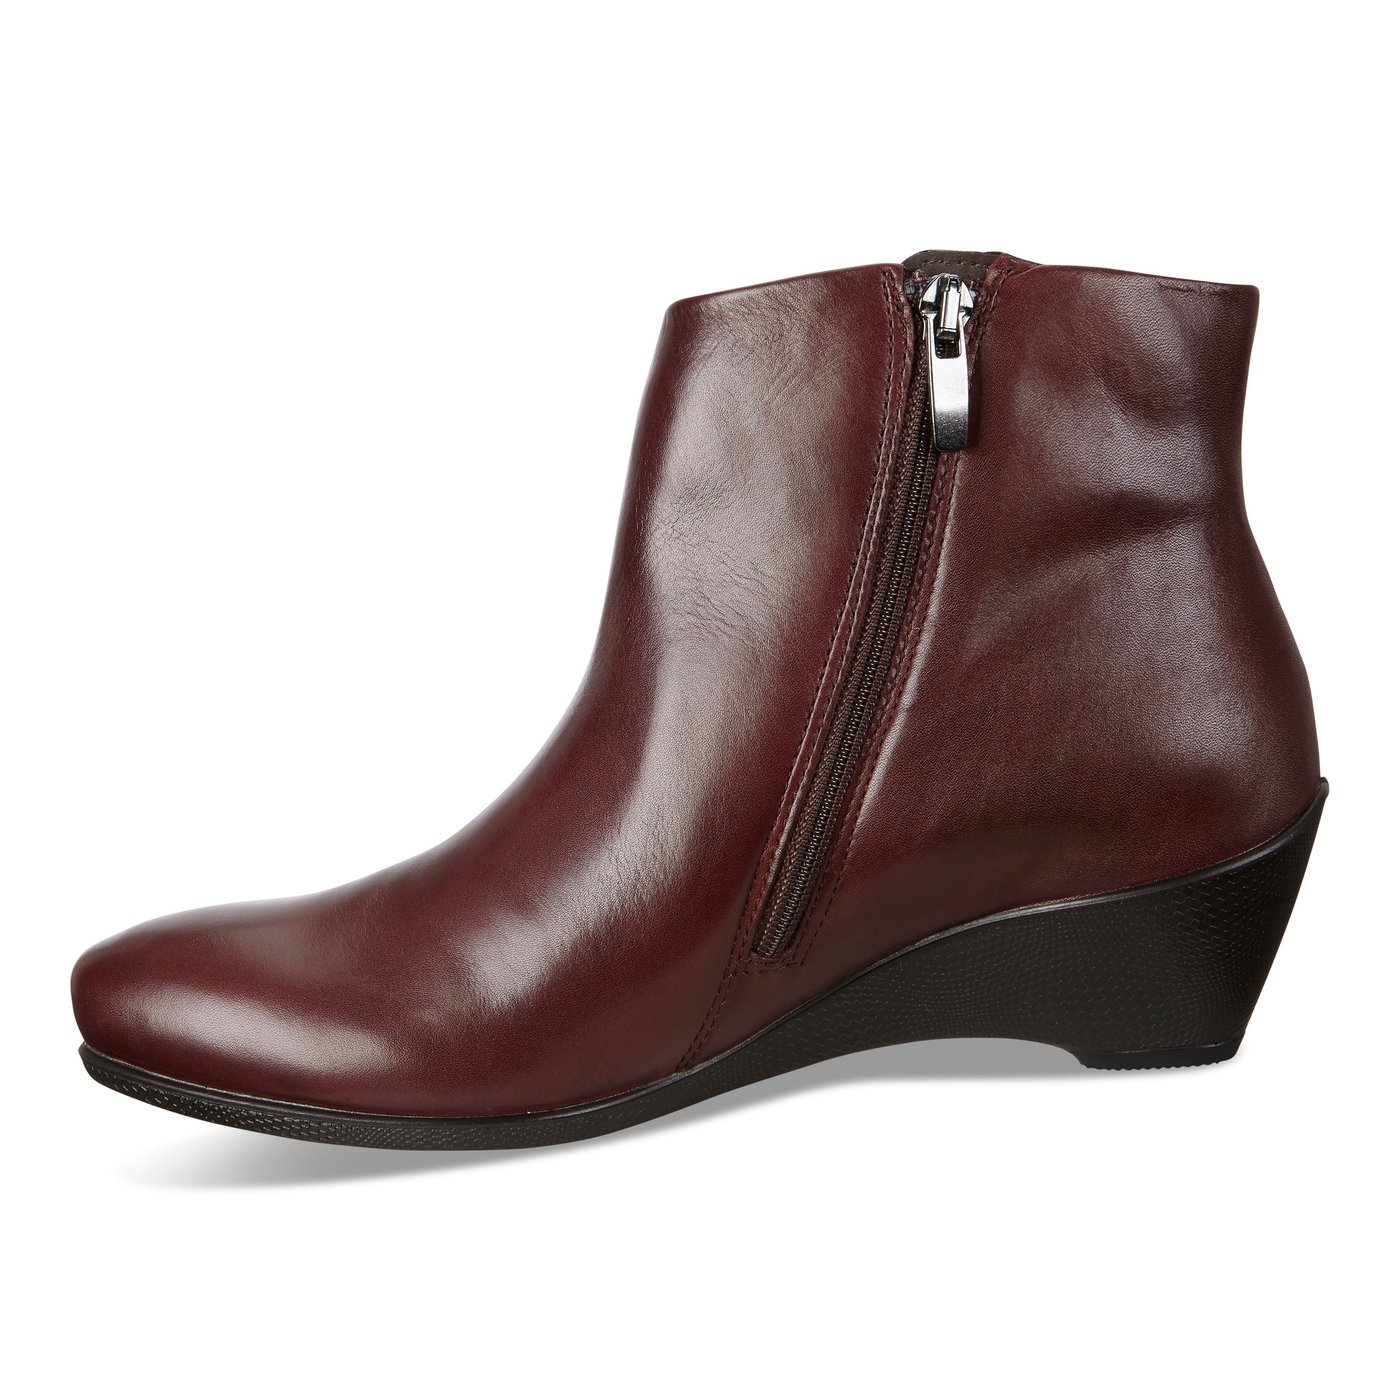 ECCO SCULPTURED Wedge Ankle Boot with INFINIUM by Gore 45mm